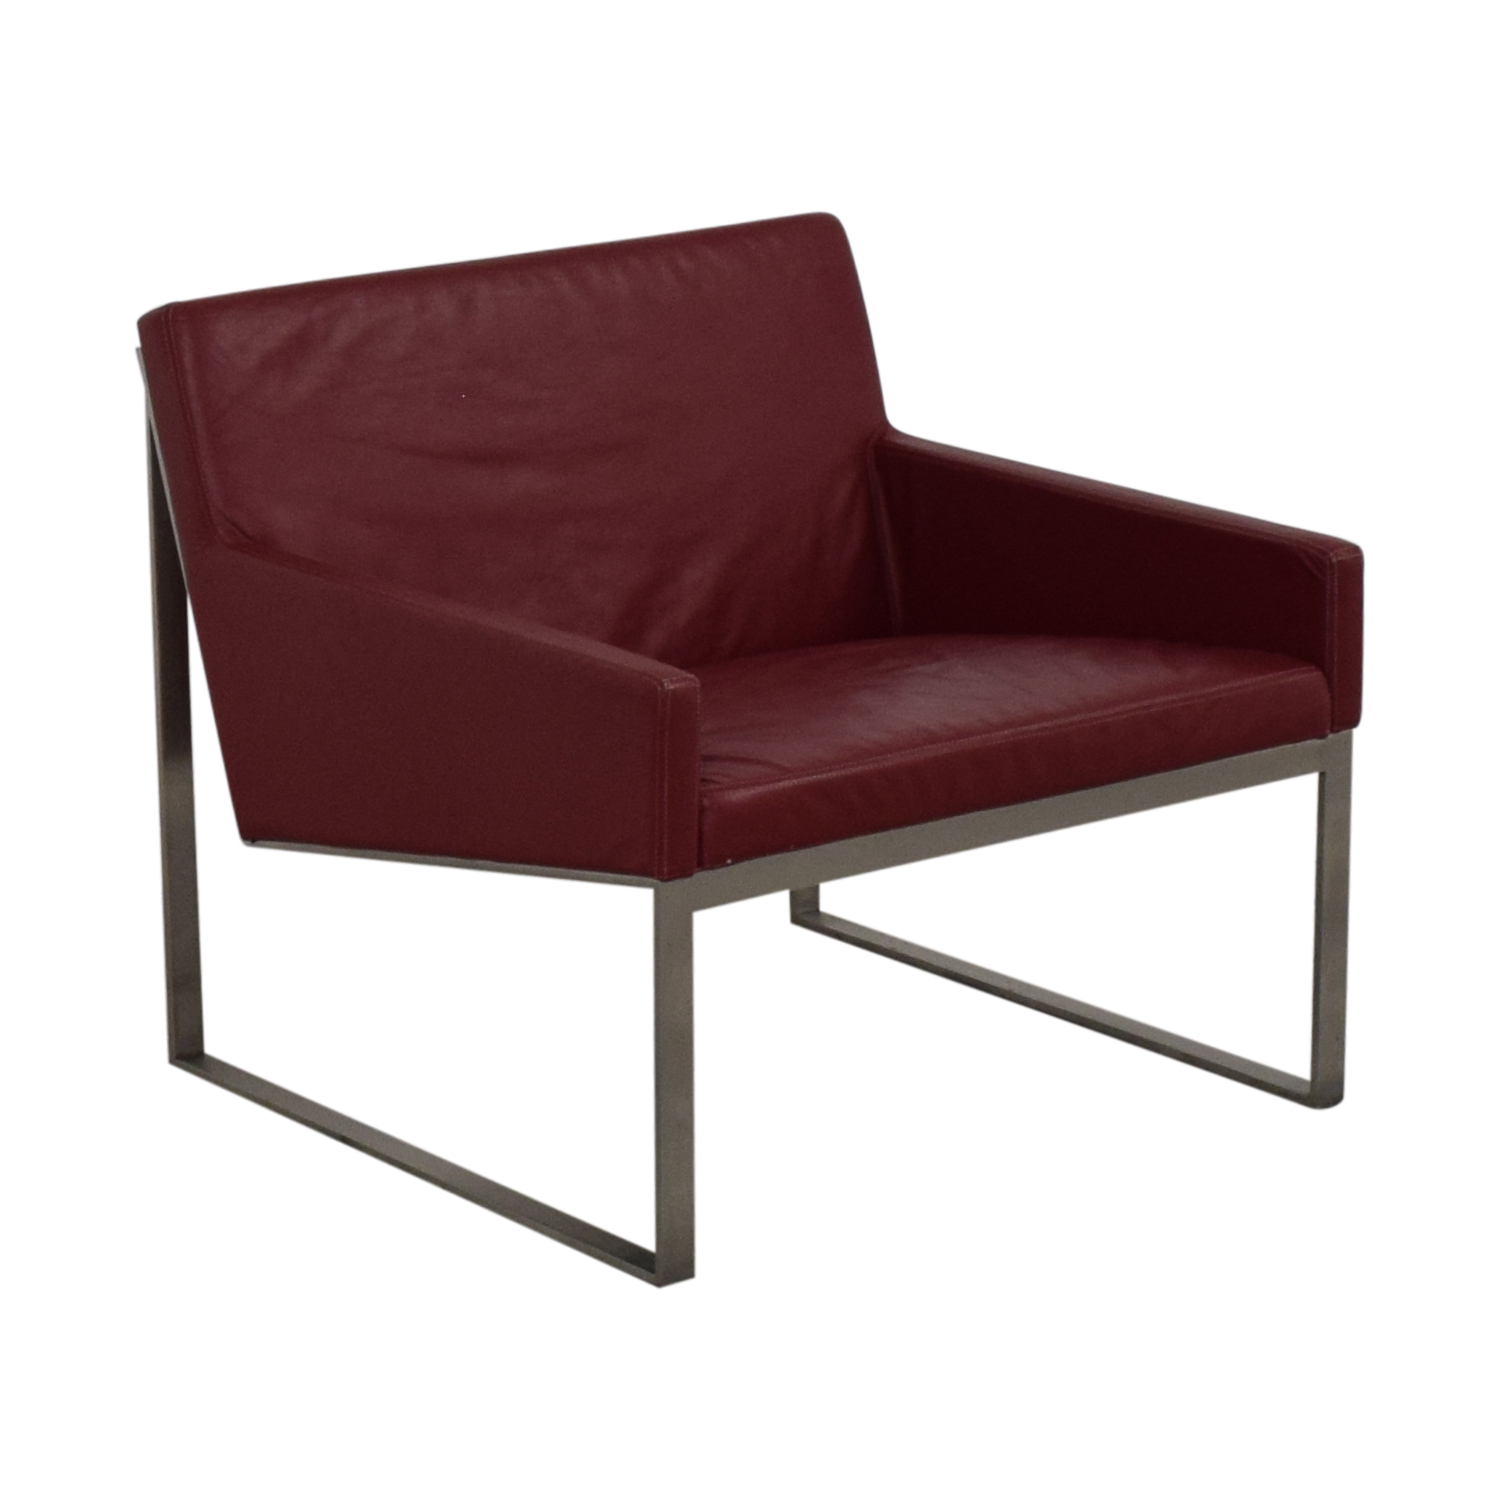 Bernhardt Bernhardt B.3 Lounge Chair price